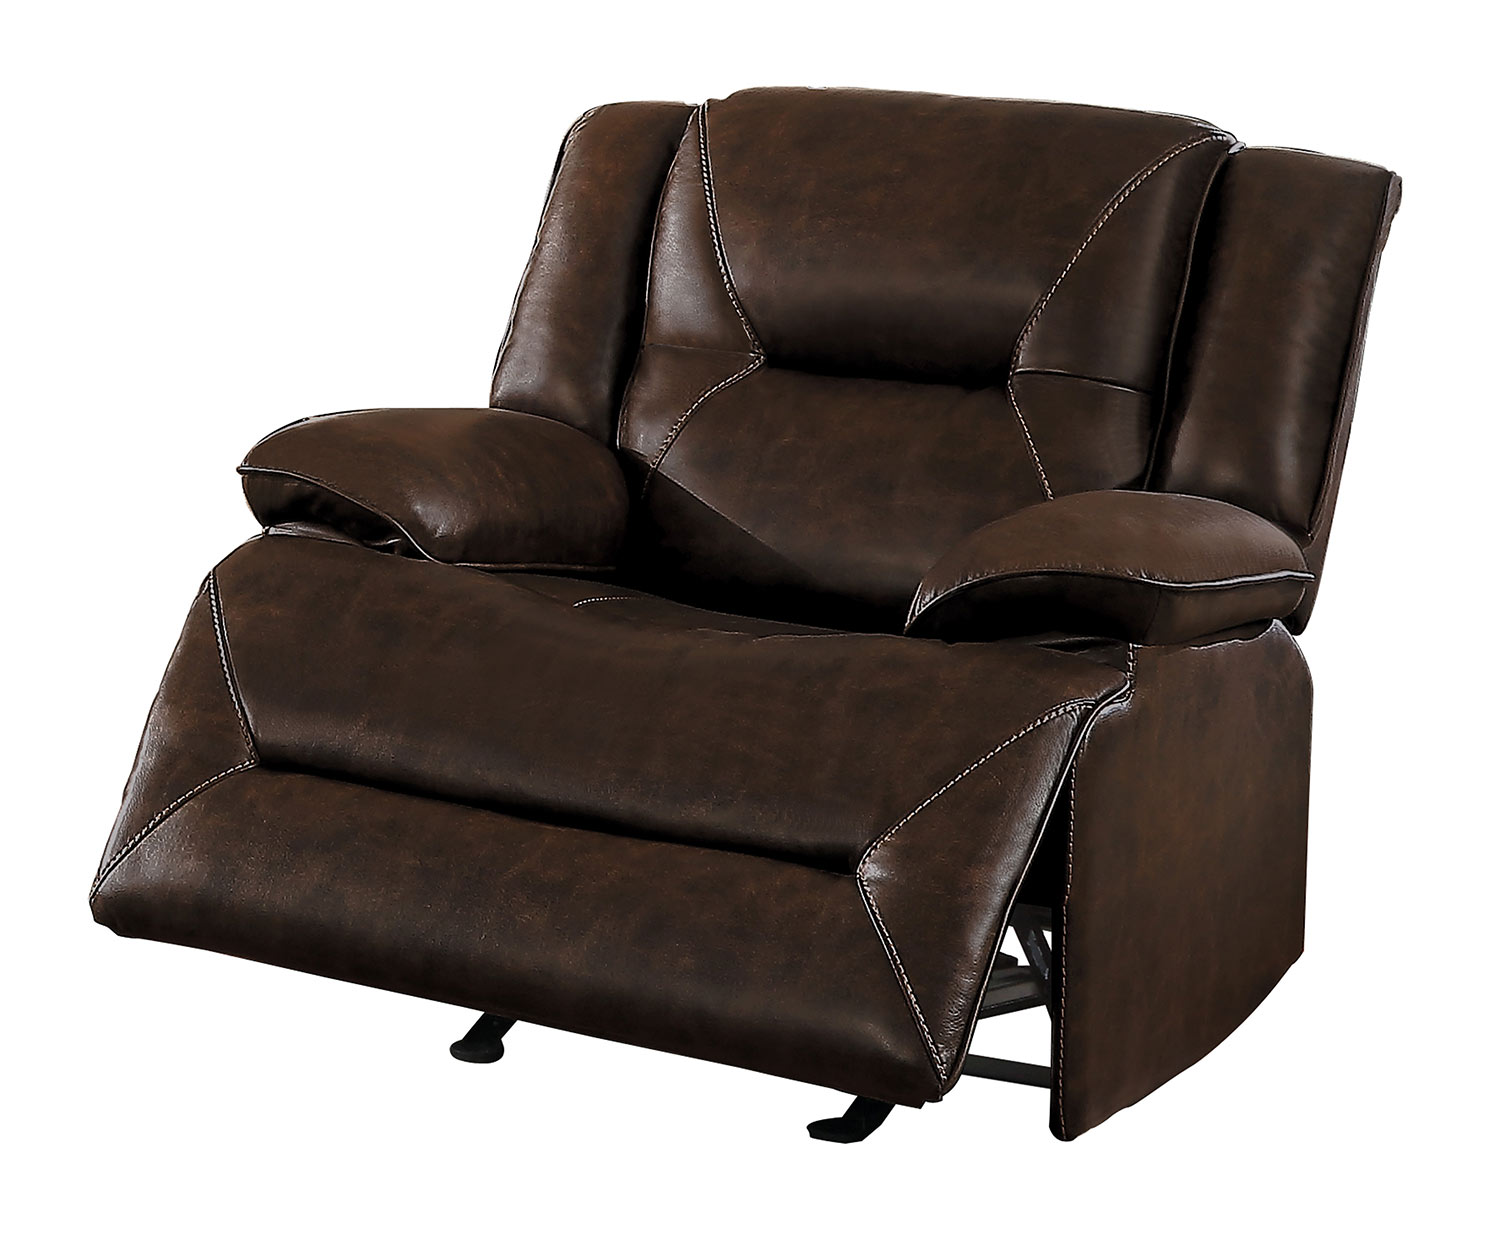 Homelegance Okello Glider Reclining Chair - Brown AireHyde Match